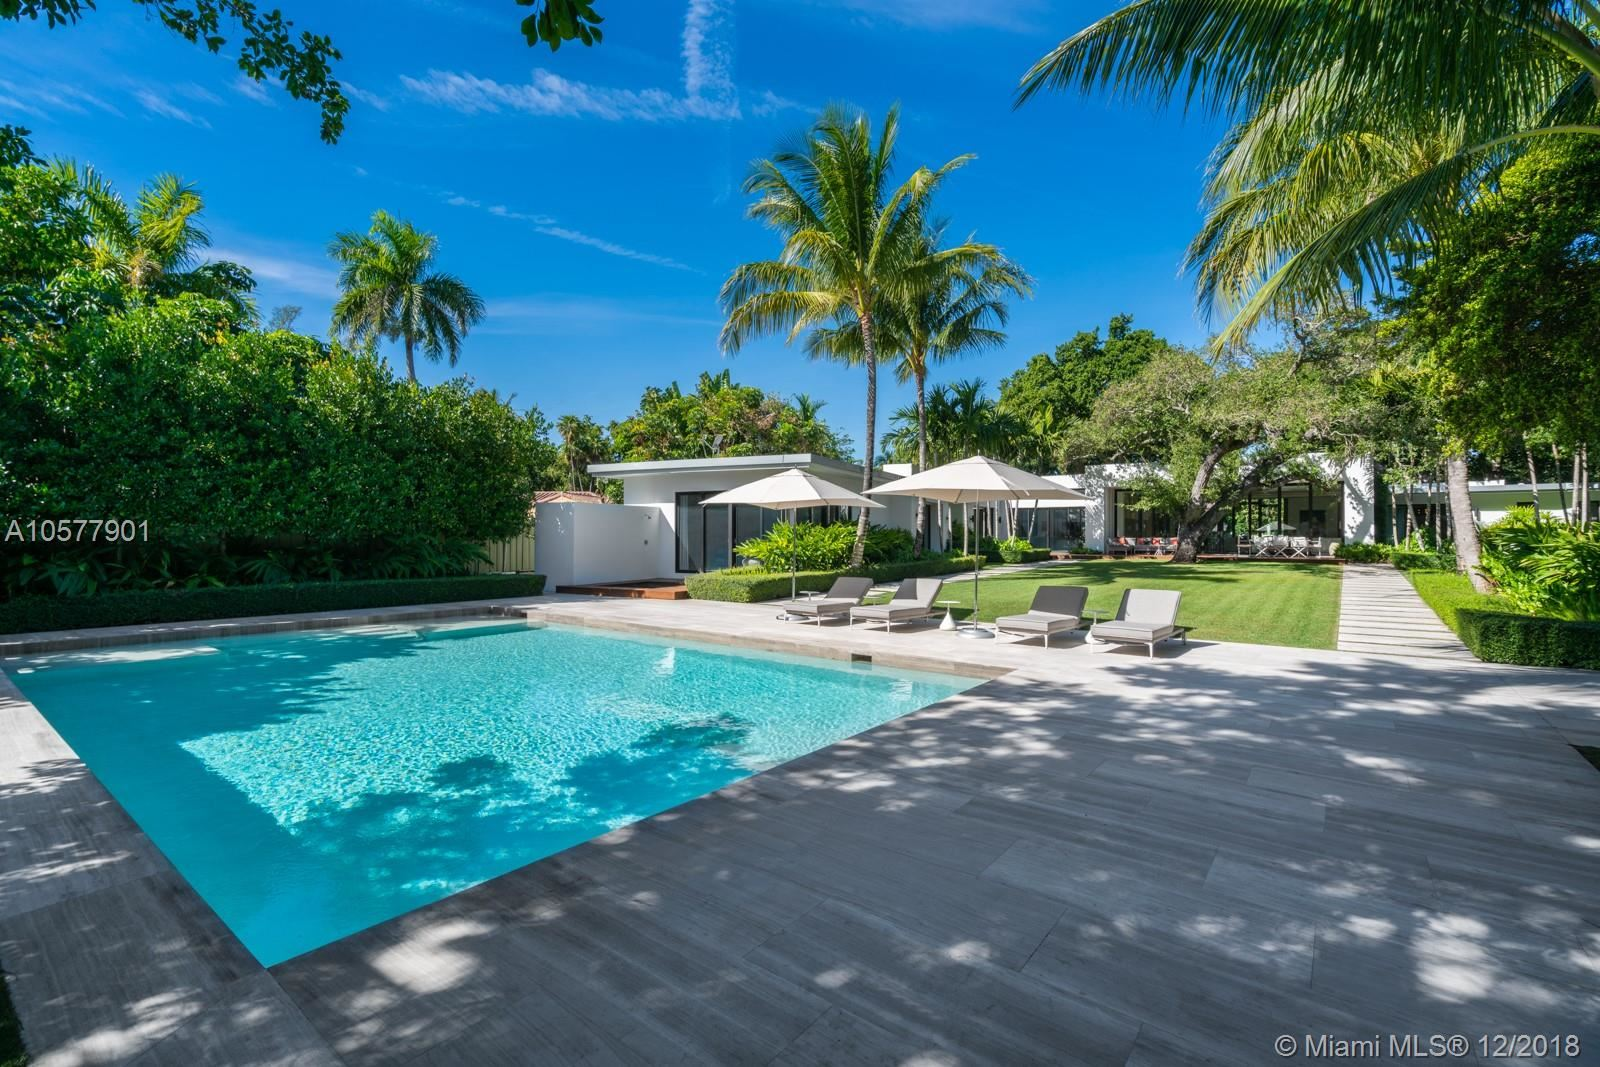 Photo 32 of Listing MLS a10577901 in 5045 Lakeview Drive Miami Beach FL 33140